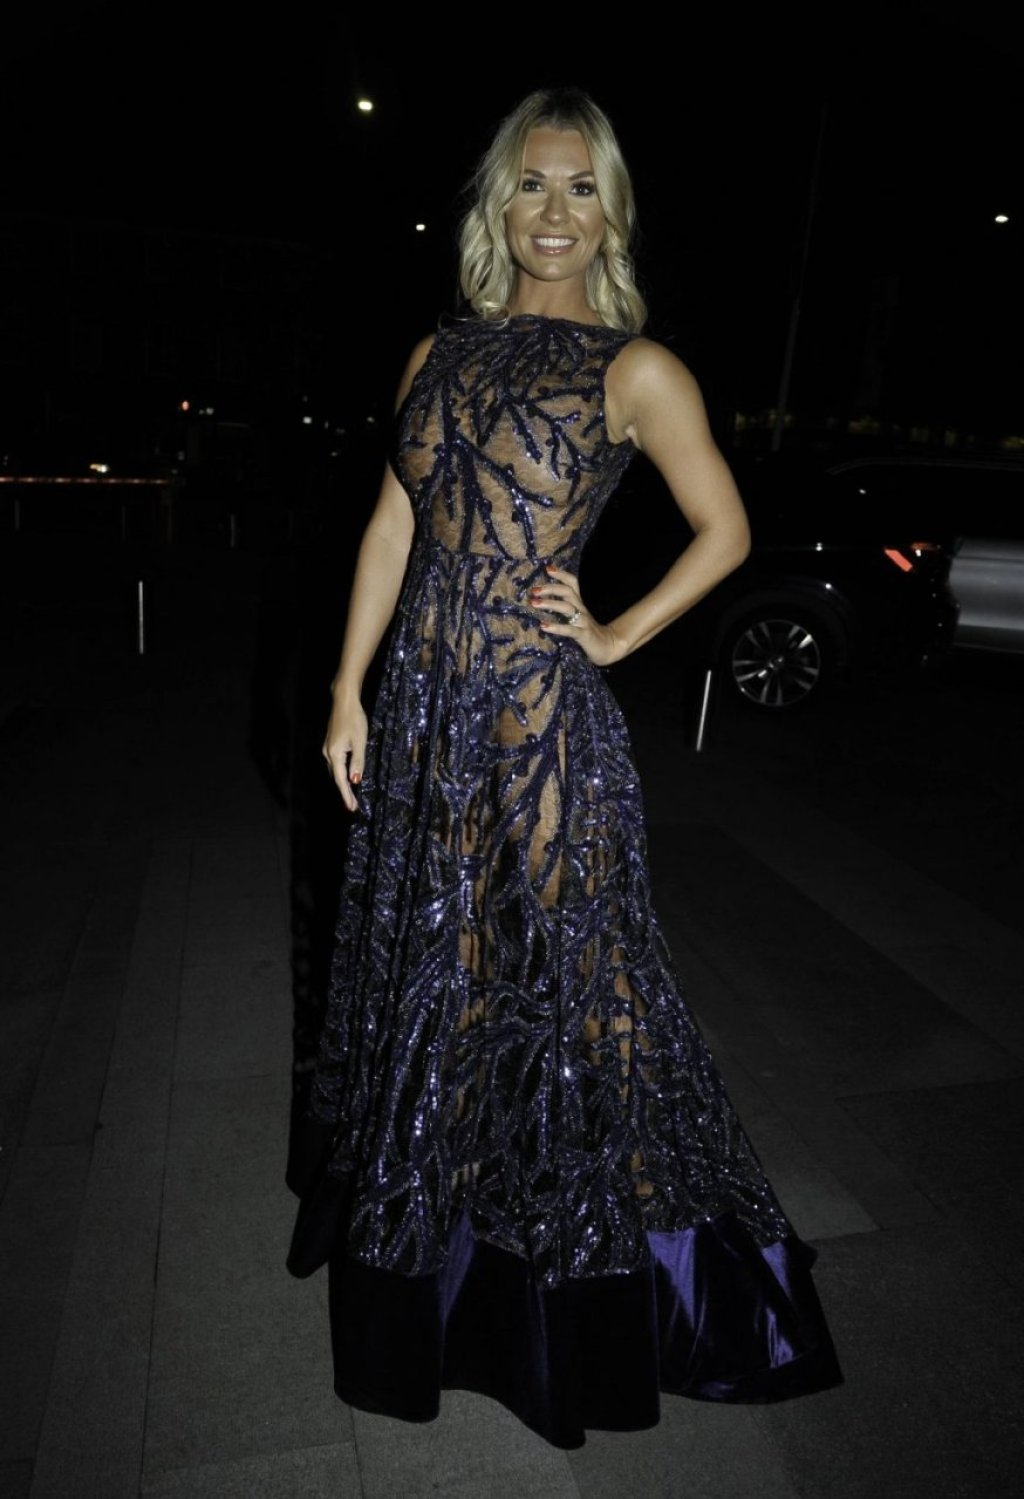 Christine McGuinness See Through (108 Photos)